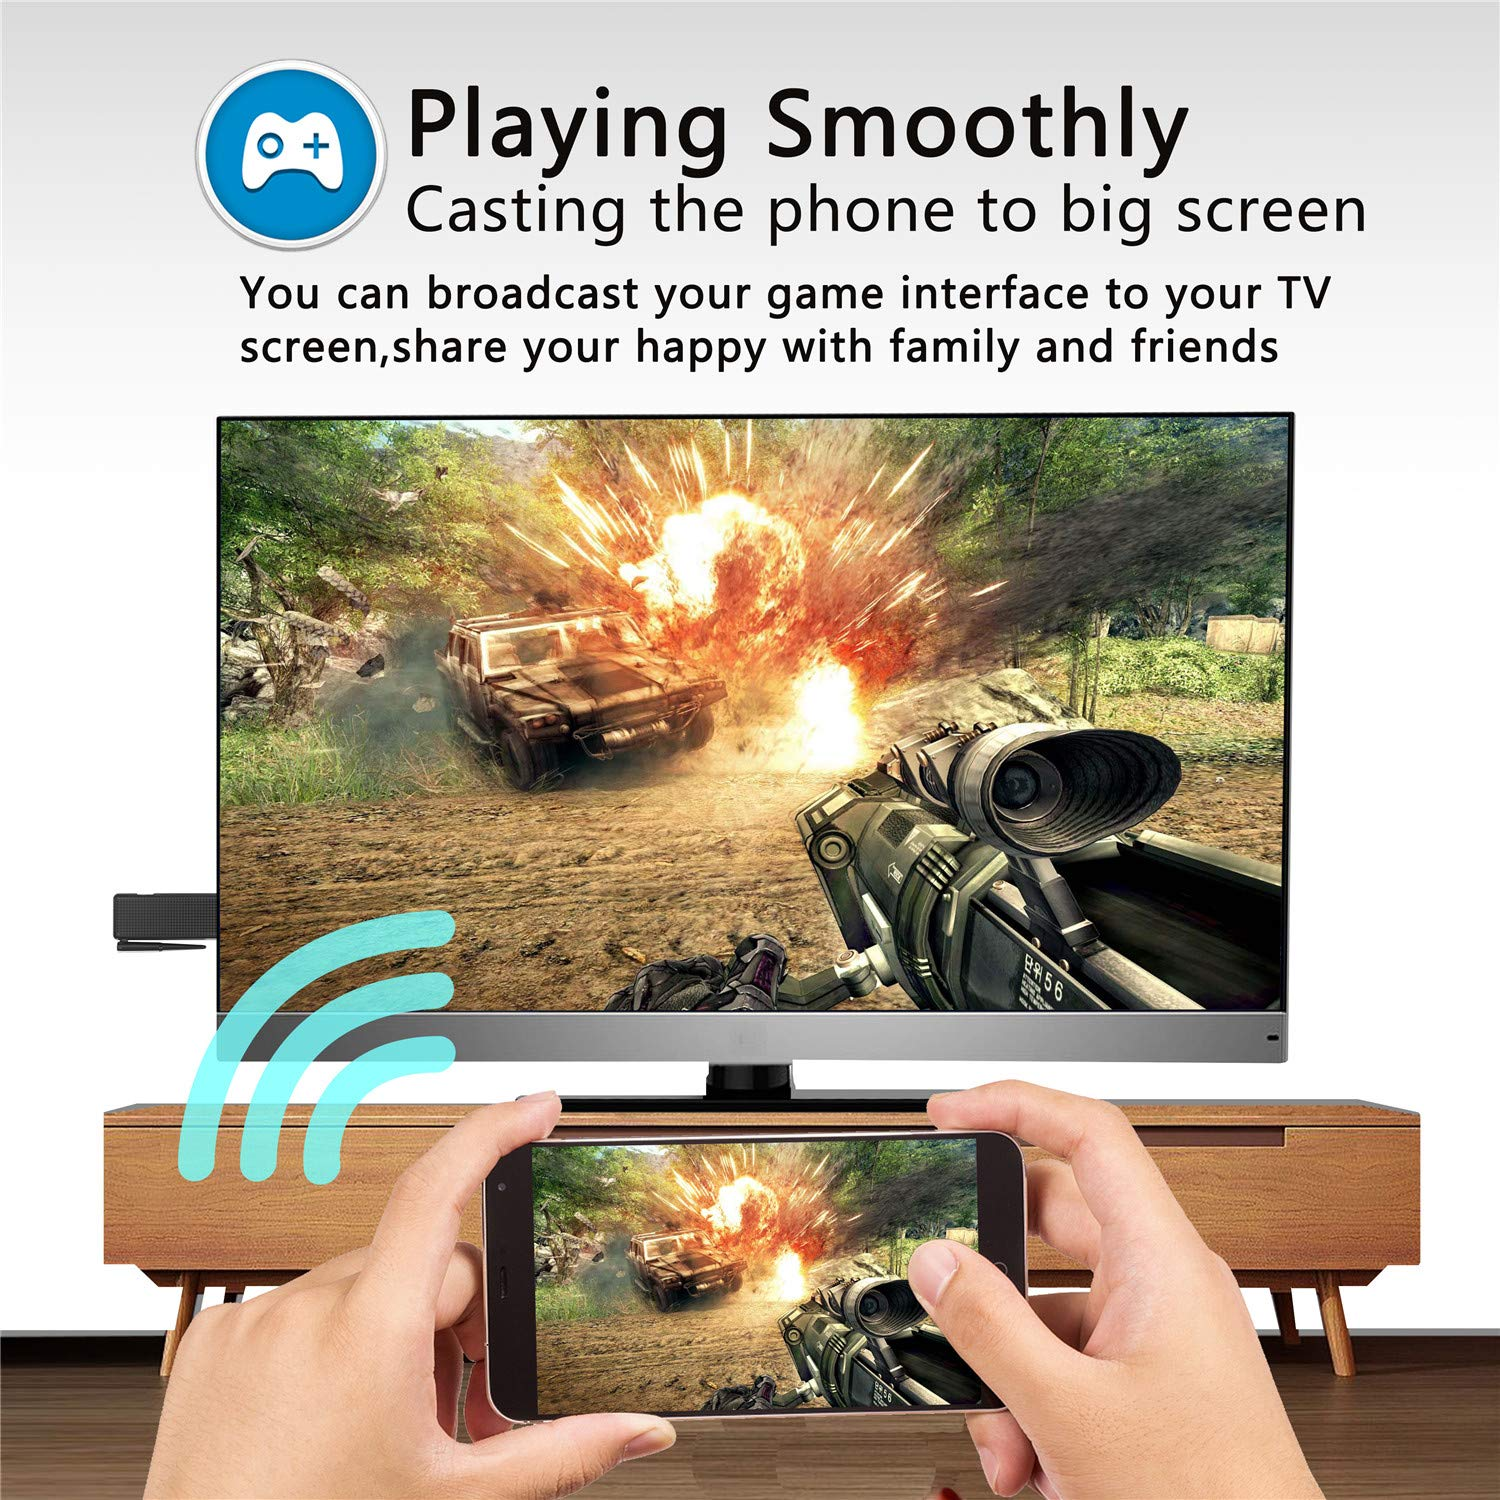 VICTONY Wireless And Wired 2 In 1 1080P WiFi Display Dongle, for TV,High Speed HDMI Miracast Dongle for Android/iOS Smartphone,Tablet,iPhone,iPad,Support AirPlay/Miracast / DLNA/Screen Mirroring by VICTONY (Image #5)